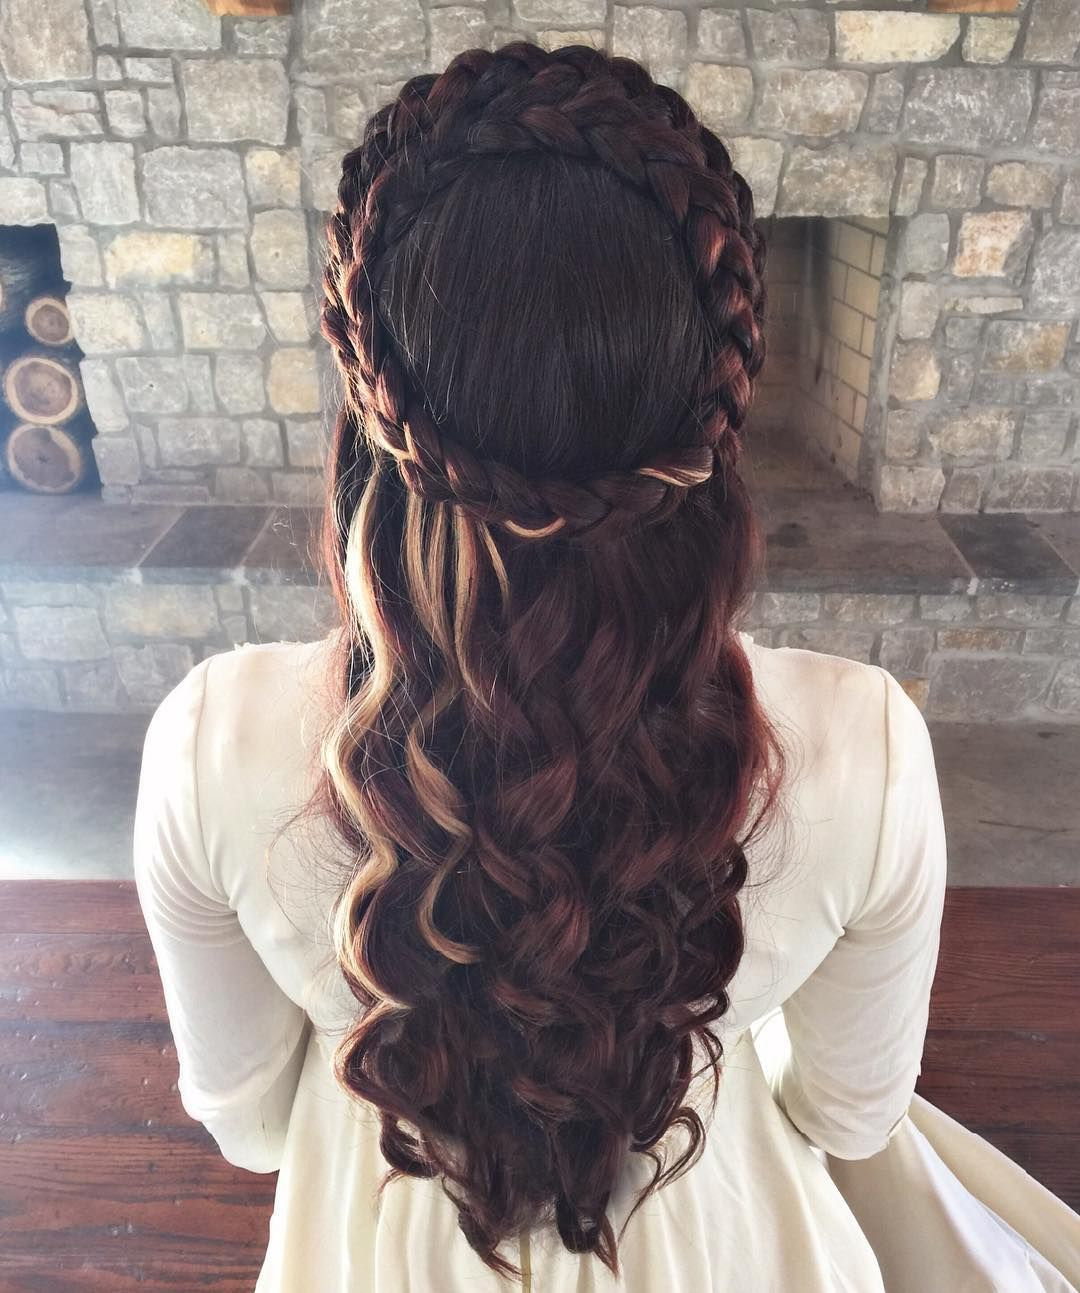 pin by megan sewell on hairstyles | medieval hairstyles